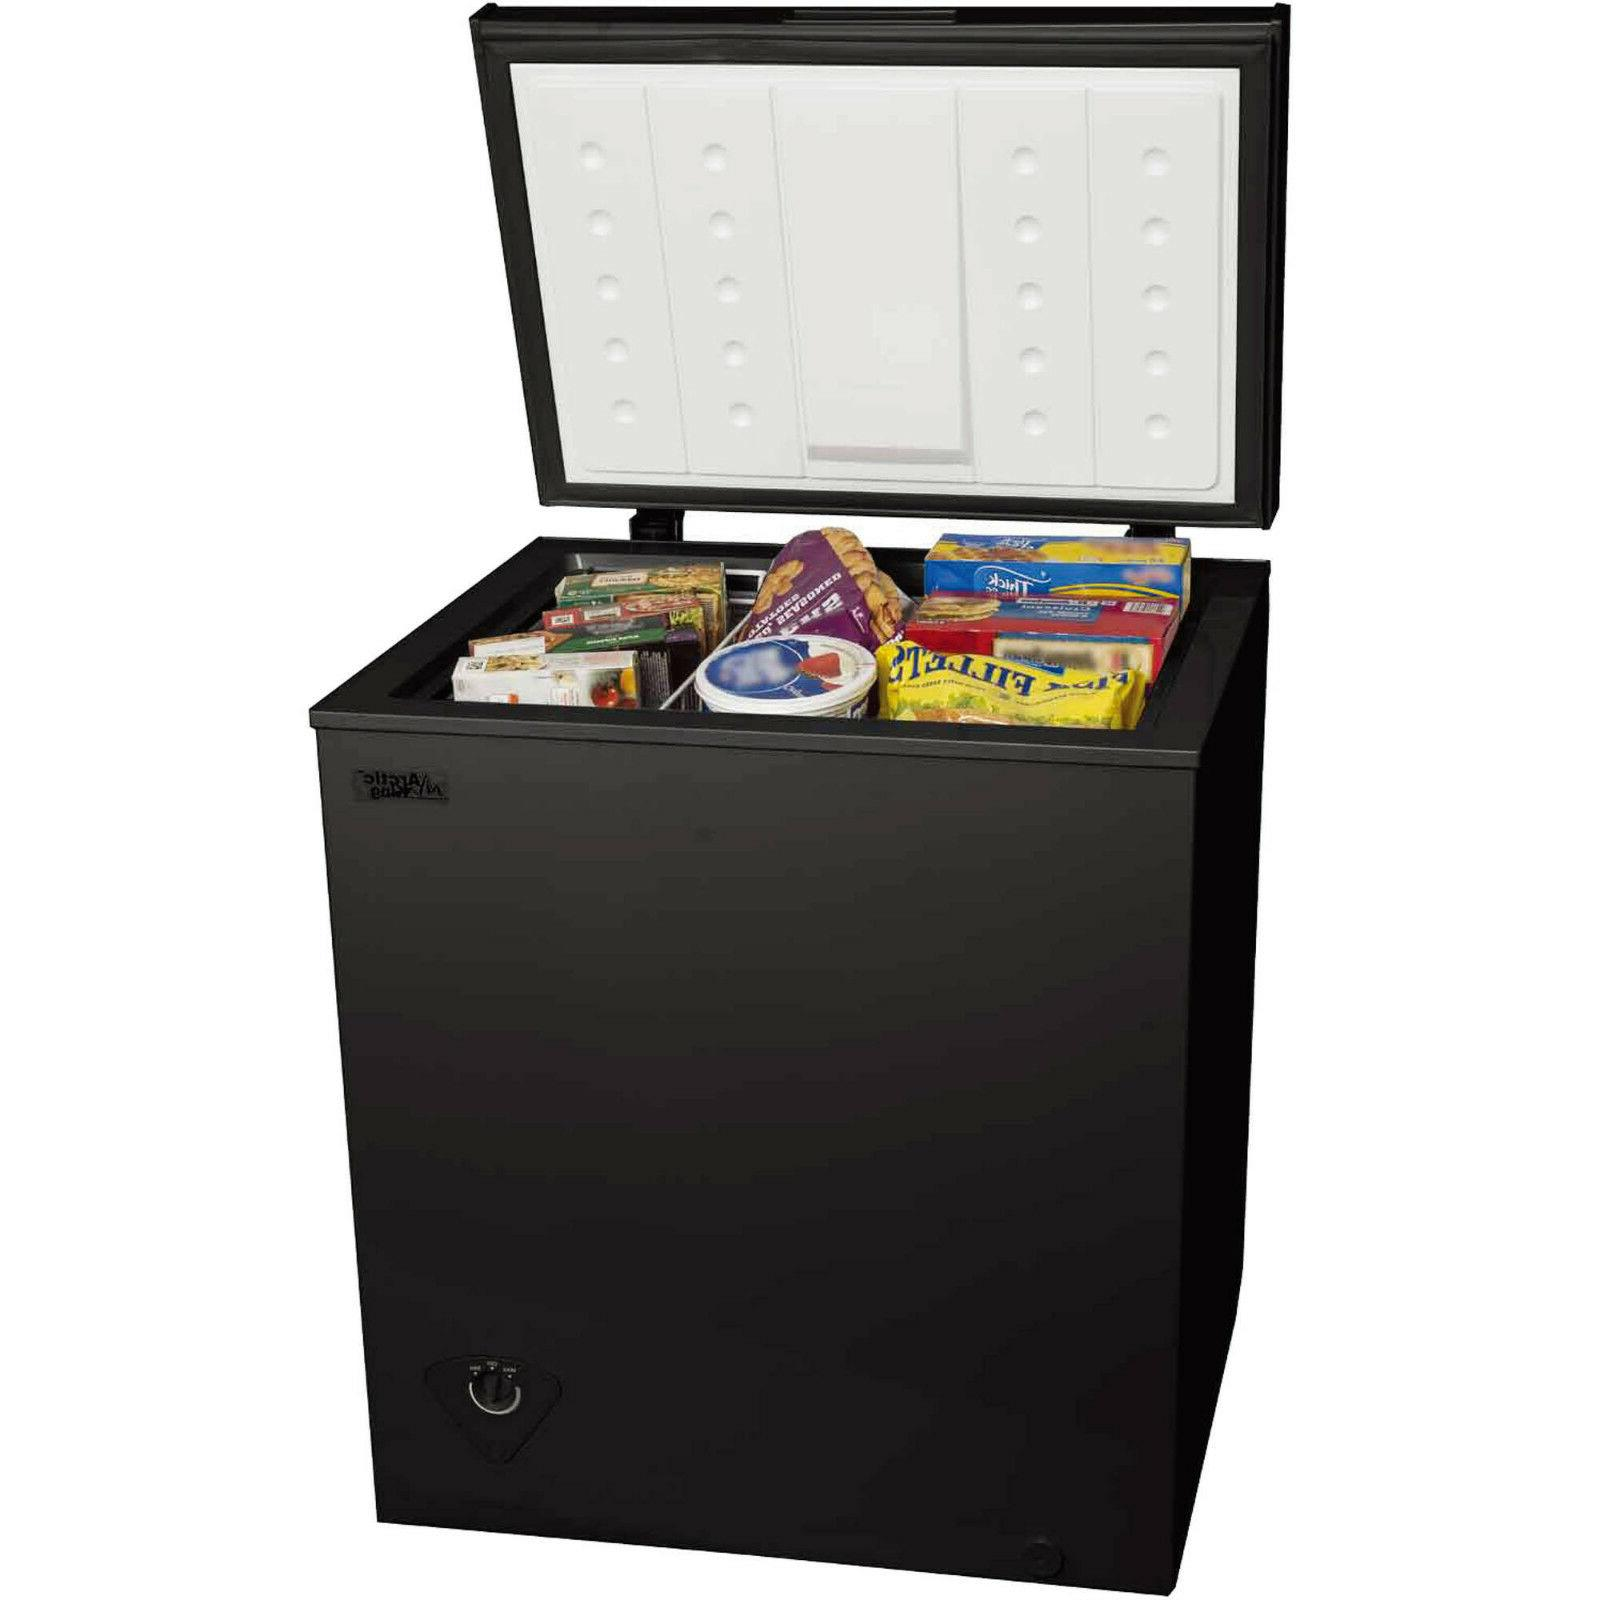 5 0 cu ft chest deep freezer